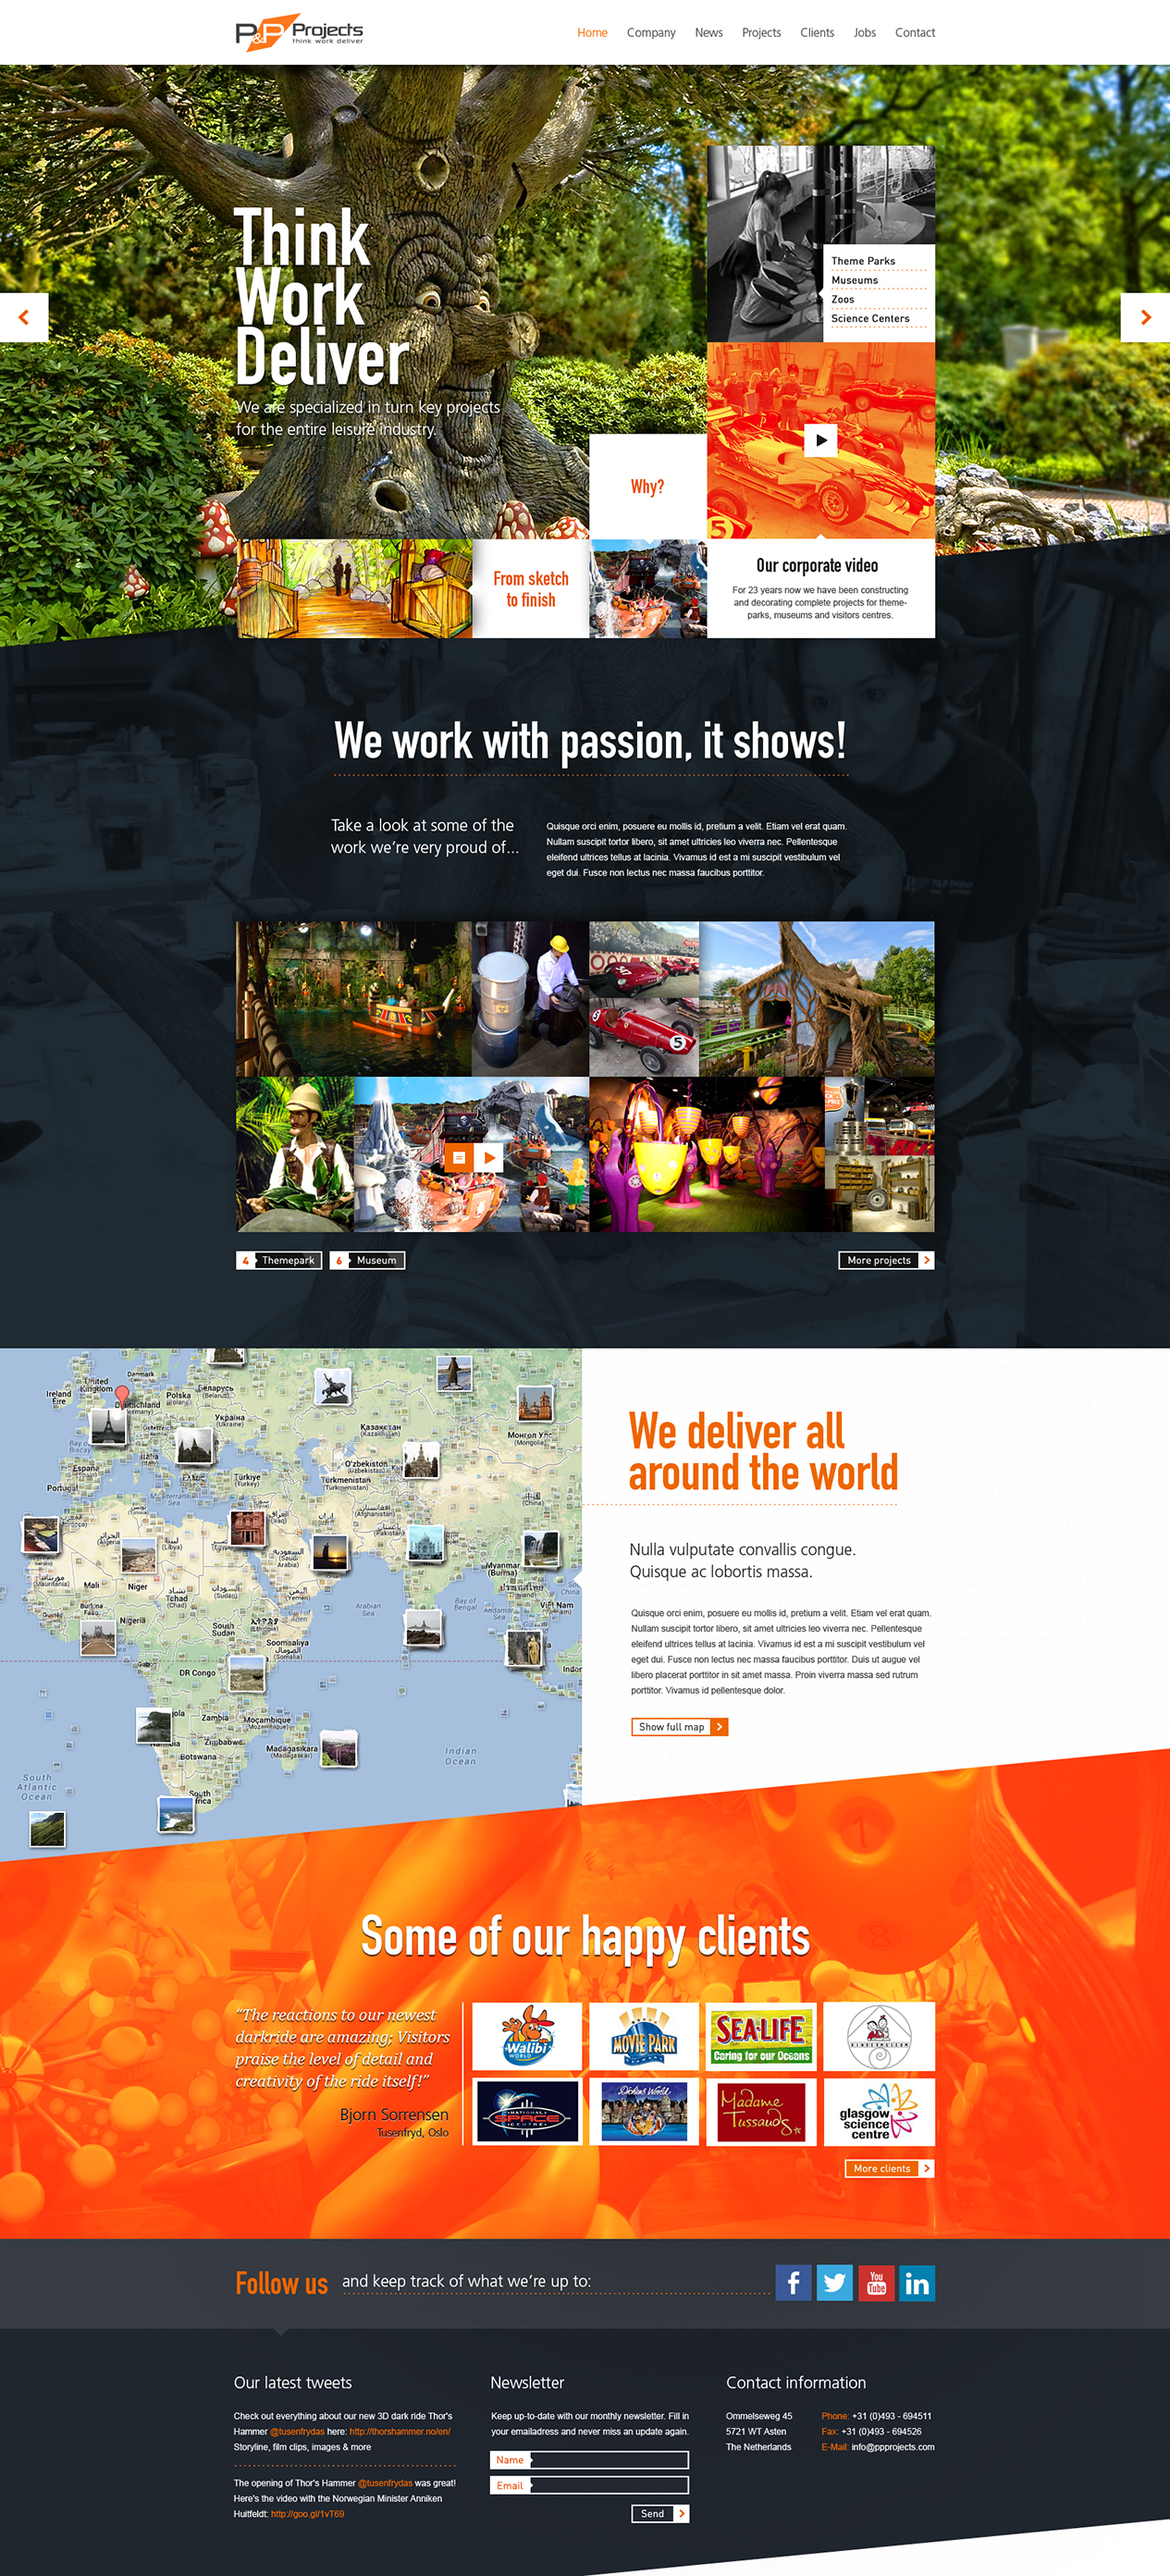 ppprojects_homepage